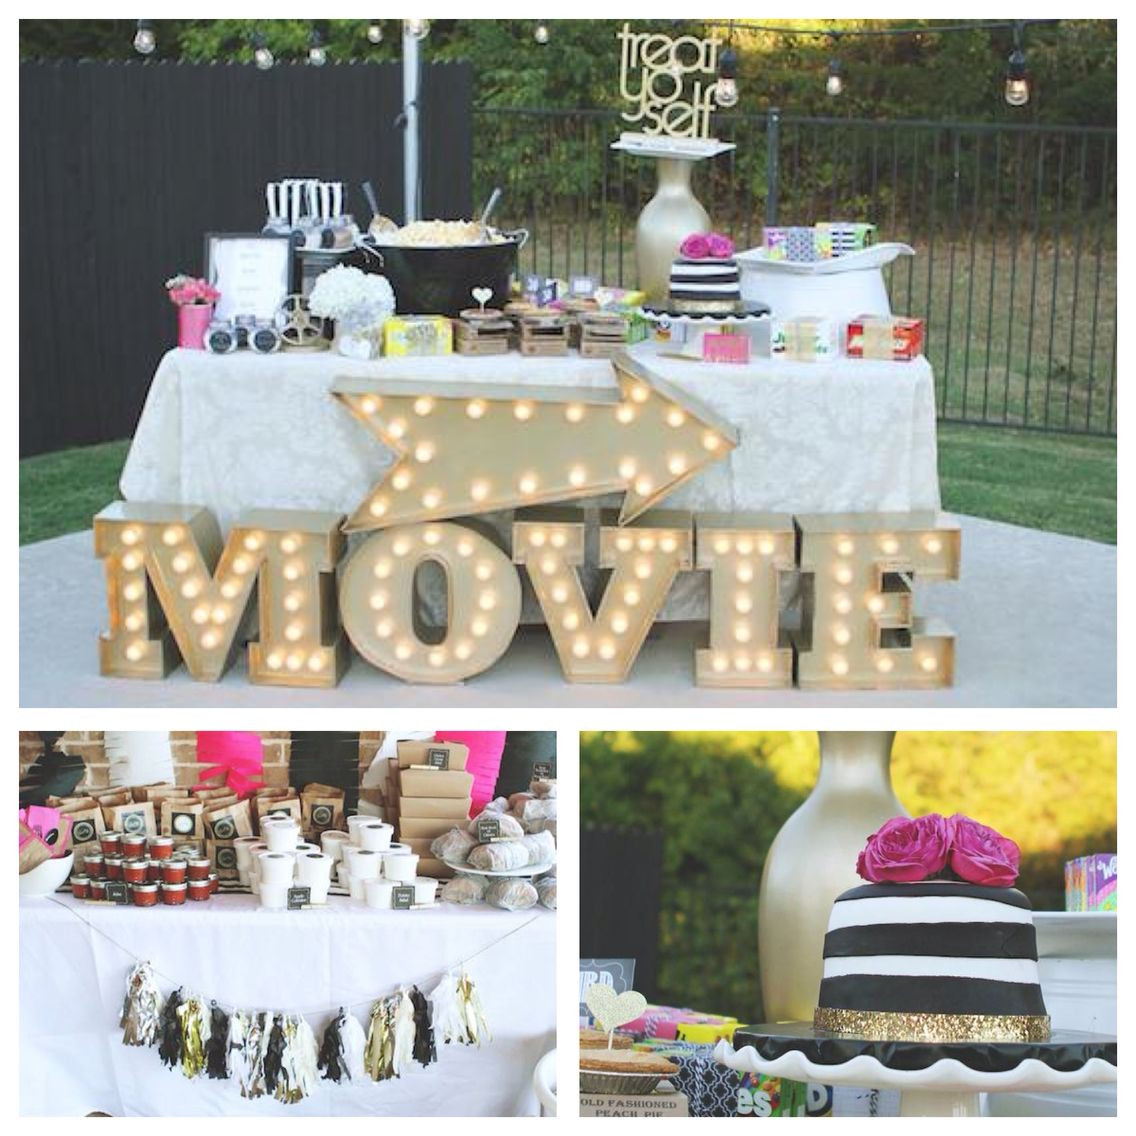 Backyard Movie Party Ideas  Outdoor Movie Party on Pinterest